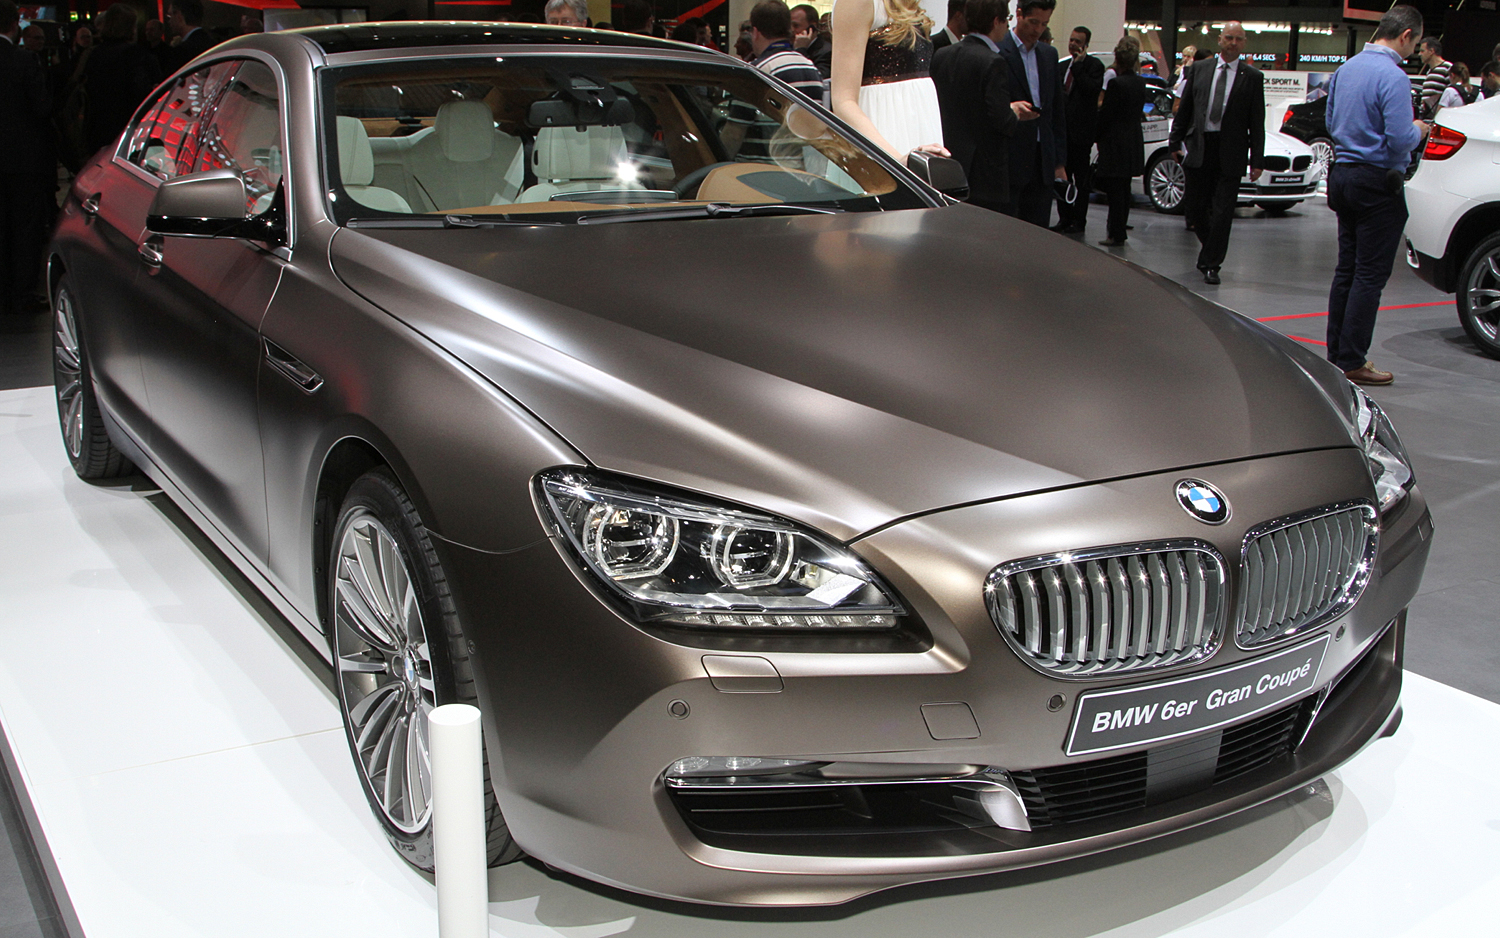 2013 BMW 6 Series Gran Coupe - Motor Trend